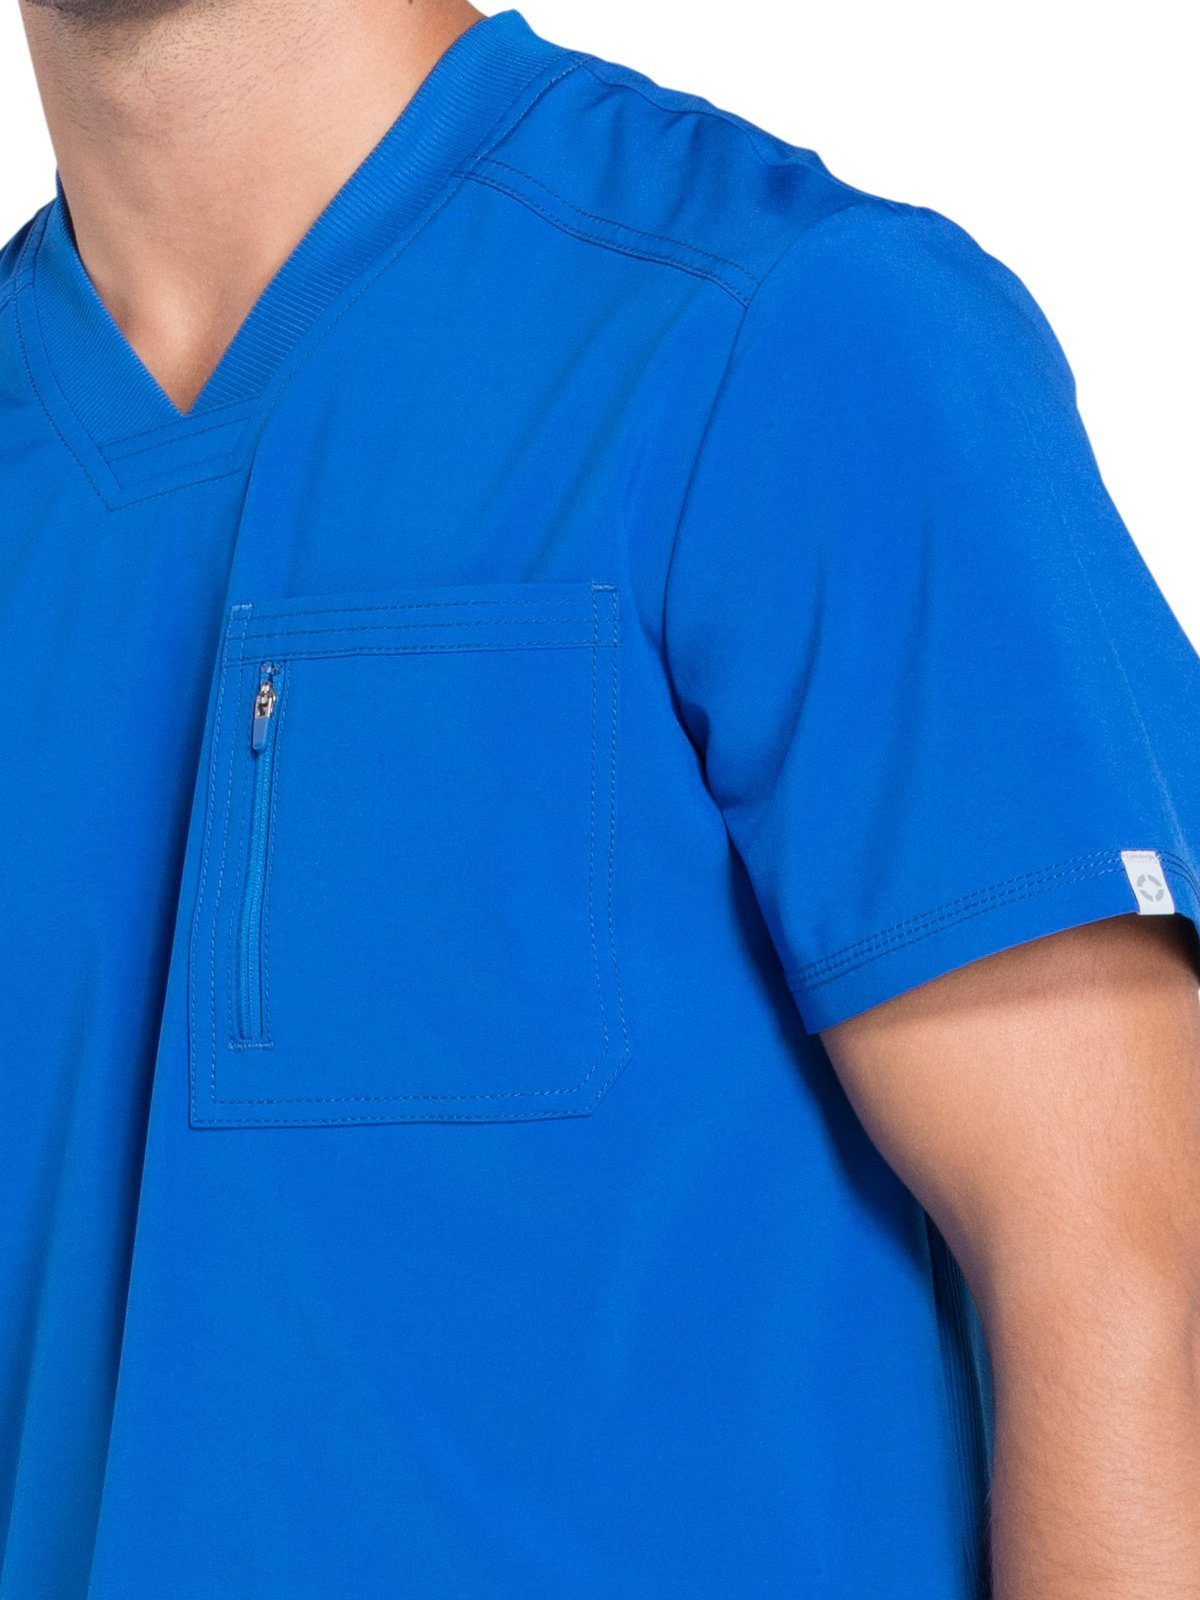 Cherokee Infinity Men's V-Neck Knit Panel Solid Scrub Top X-Large Royal by Cherokee (Image #3)